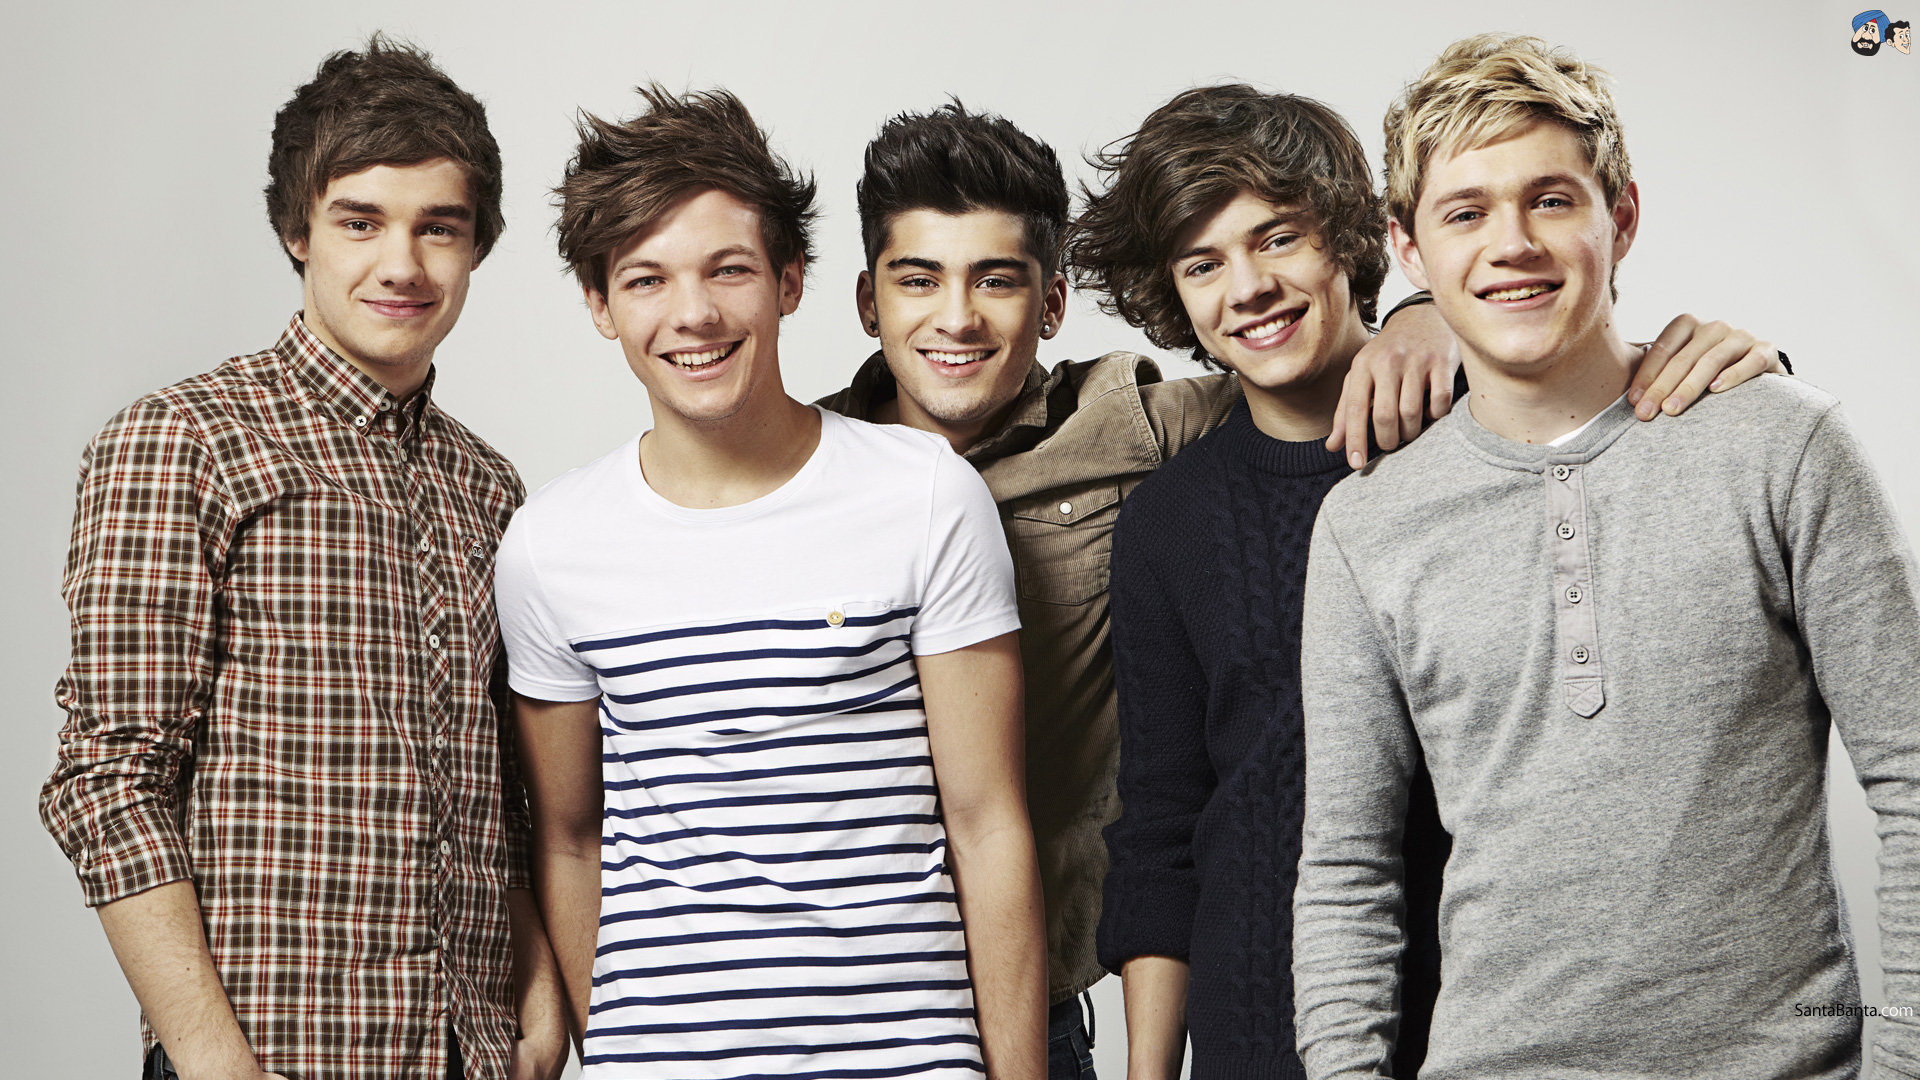 Best One Direction wallpaper ID:299822 for High Resolution 1080p computer